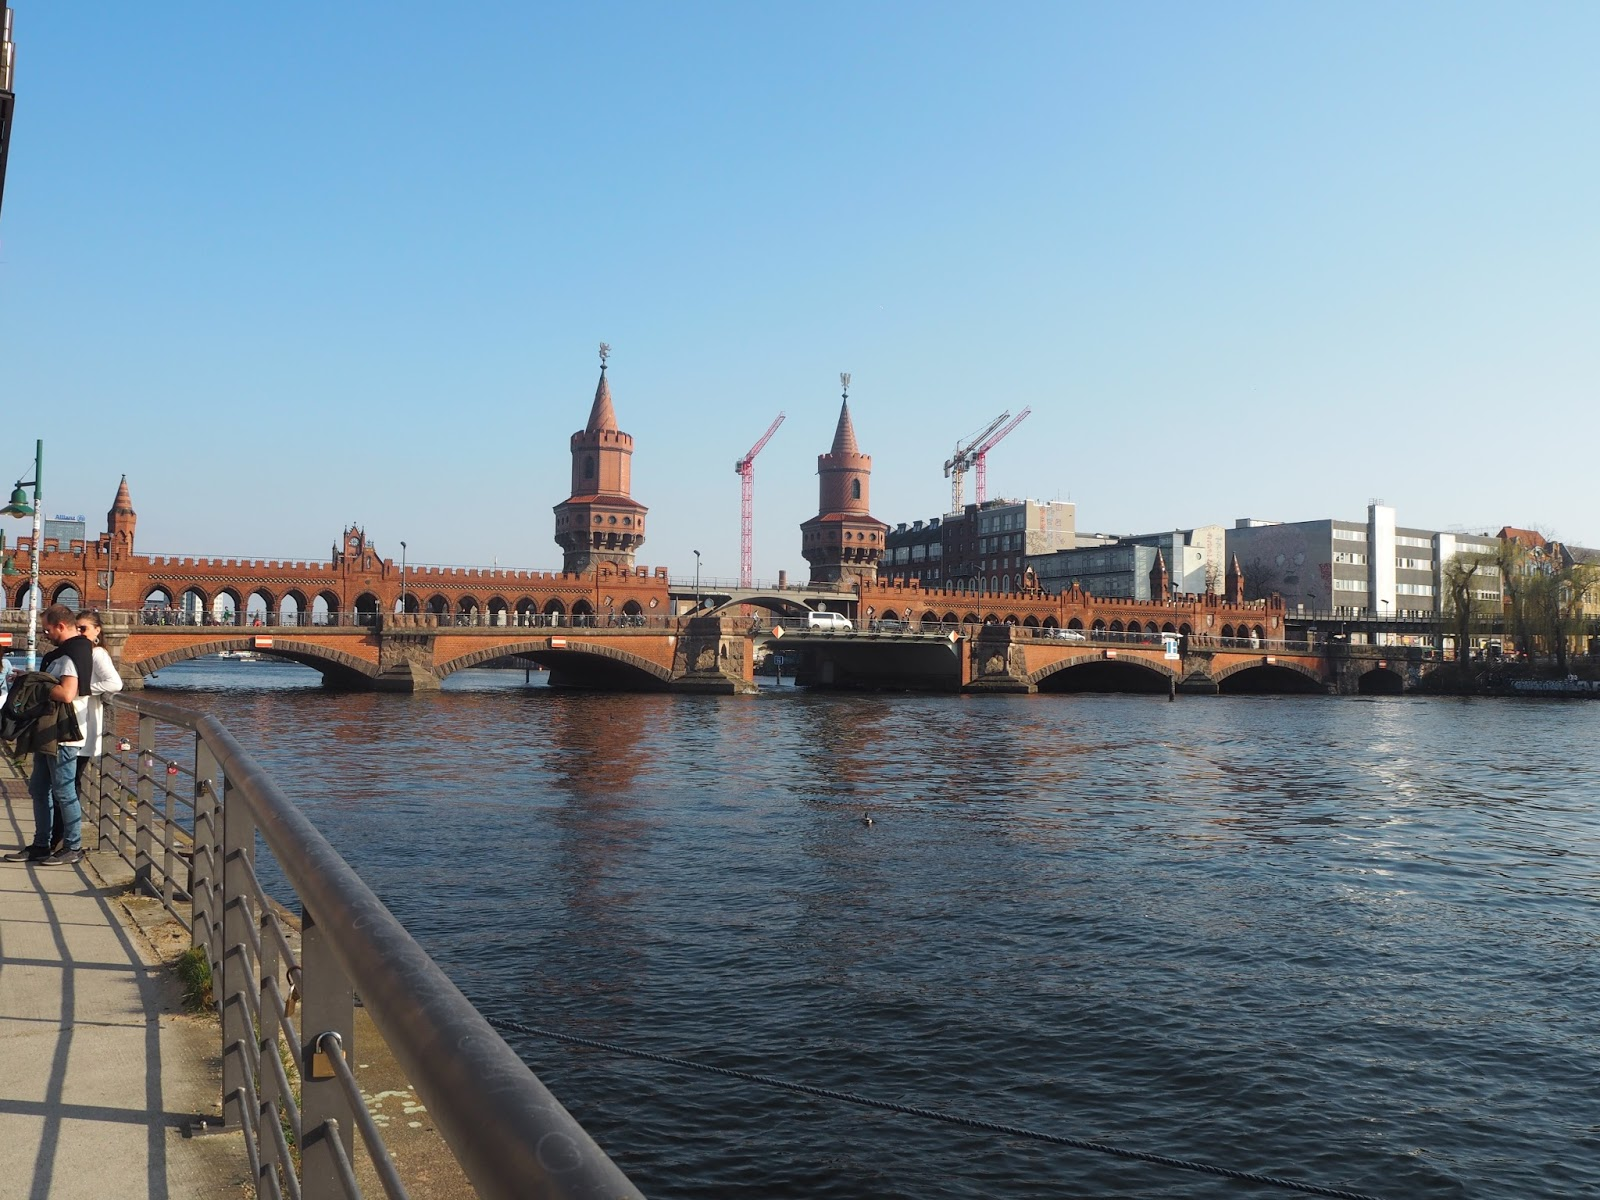 River and bridge in Berlin